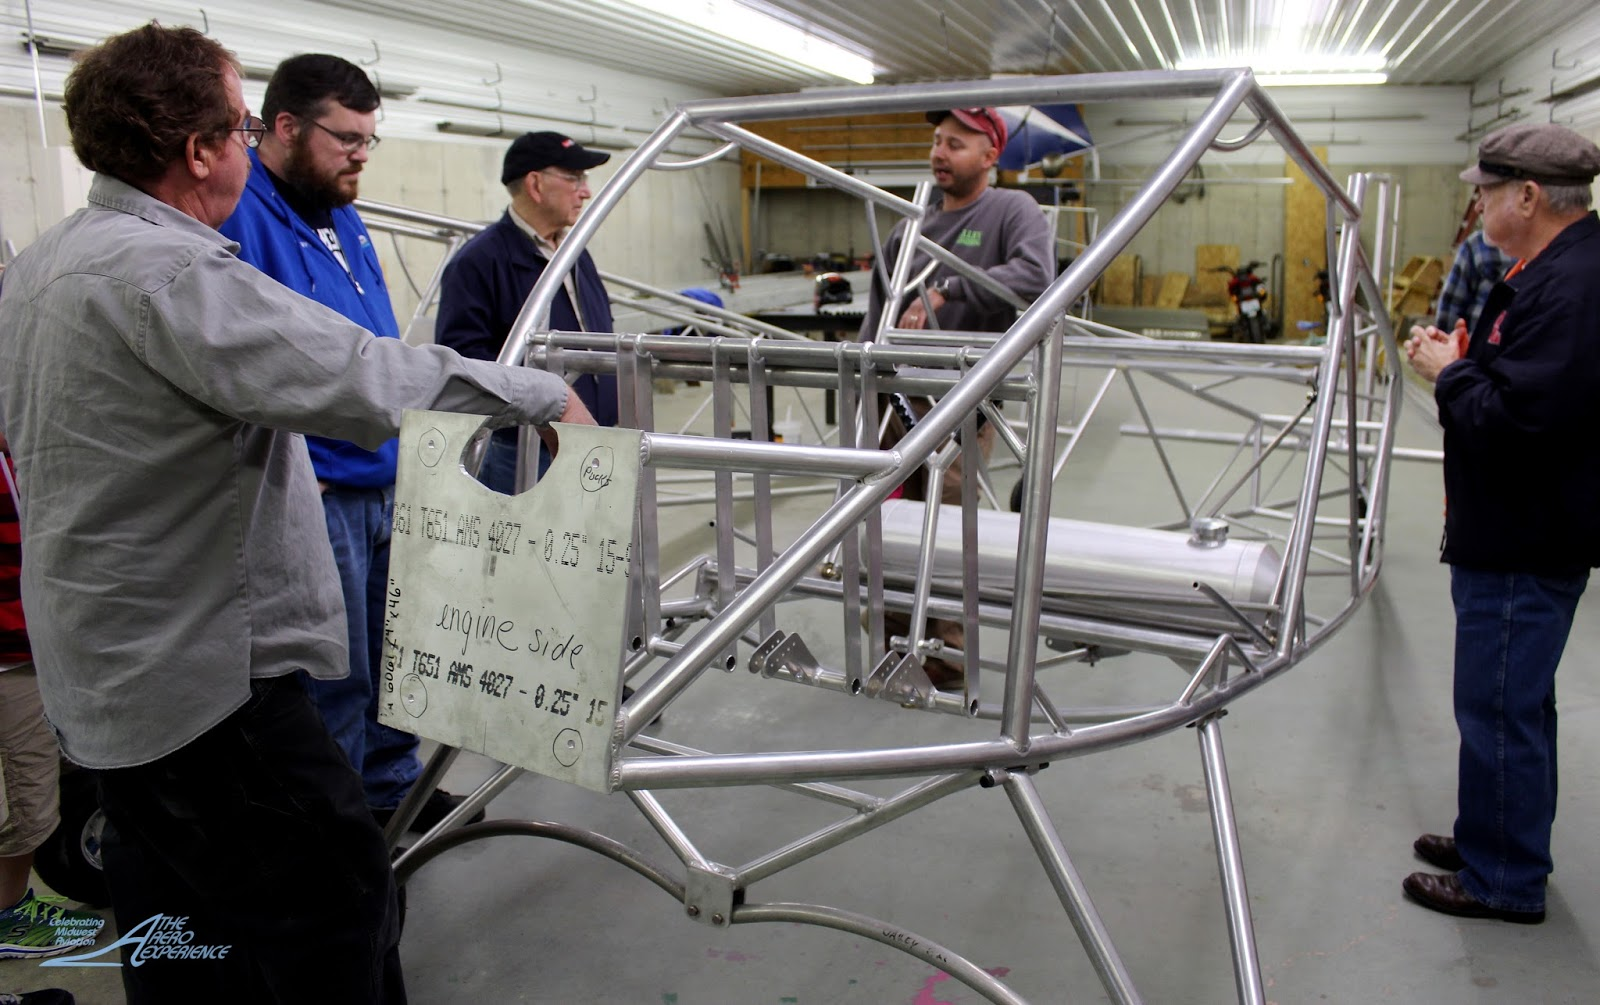 Attractive Backyard Flyer Part - 14: We Feature Some Views Of The Aircraft Under Construction, And Of Some  Photos Of Gene Smith Flying The Back Yard Flyer At The Midwest LSA Expo At  Mount ...